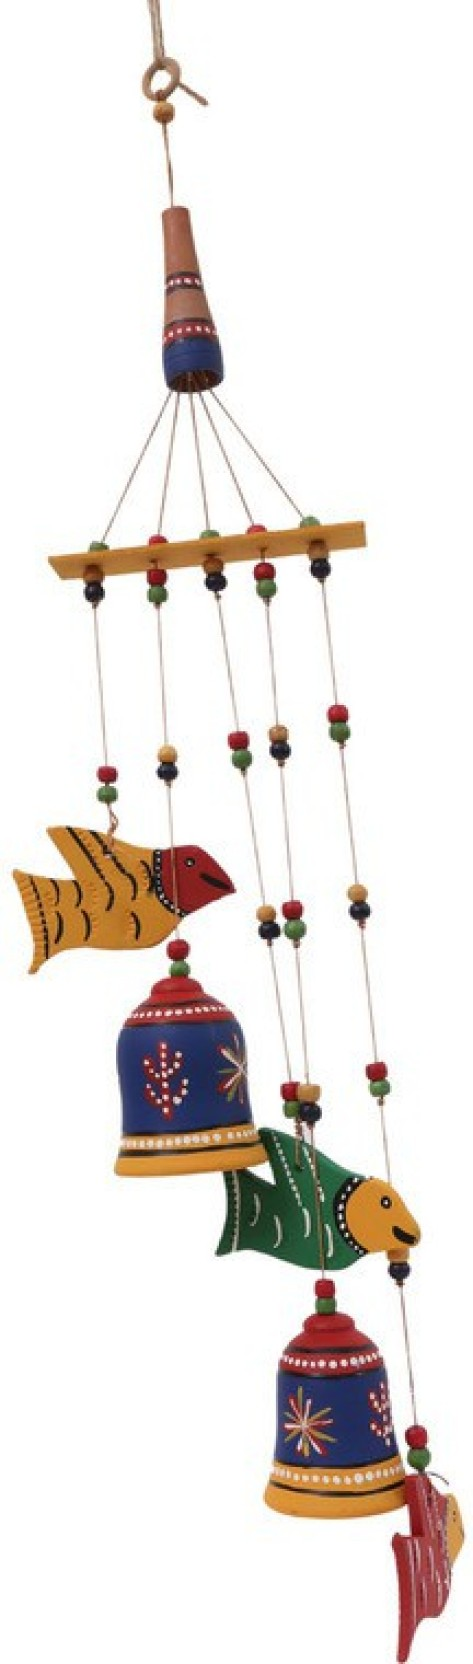 Terracotta Bell Fish Wind Chime